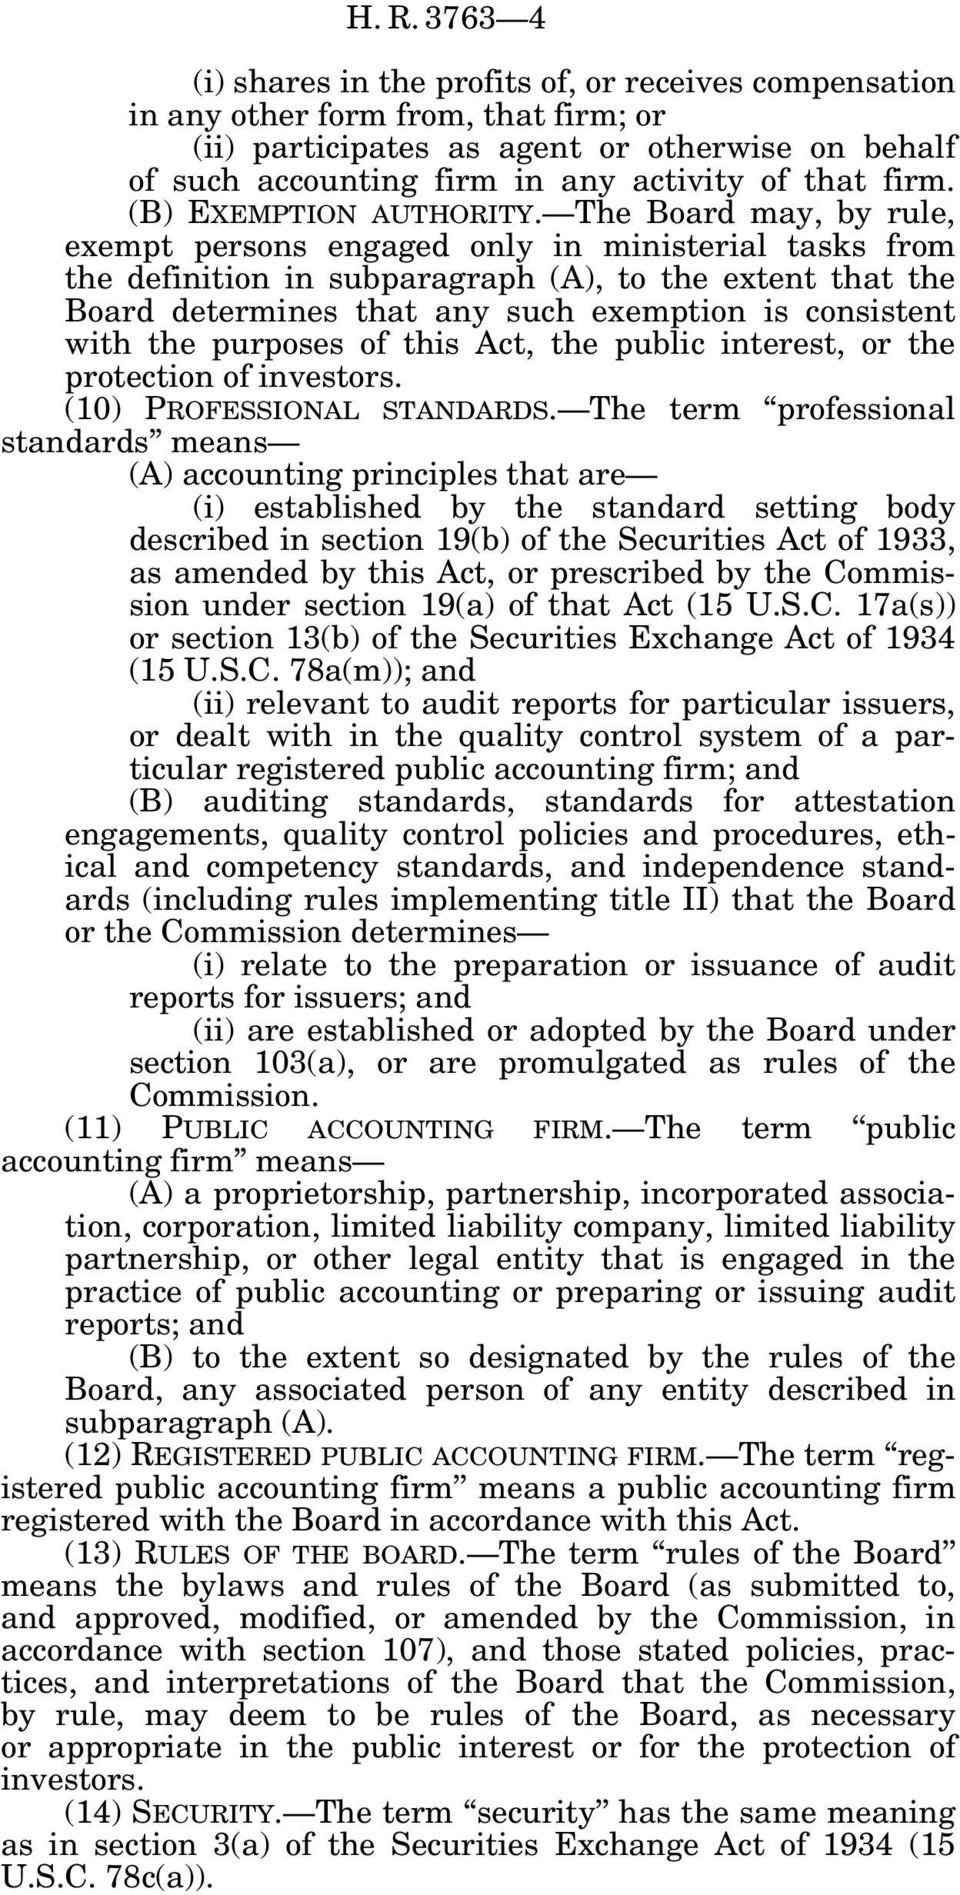 The Board may, by rule, exempt persons engaged only in ministerial tasks from the definition in subparagraph (A), to the extent that the Board determines that any such exemption is consistent with